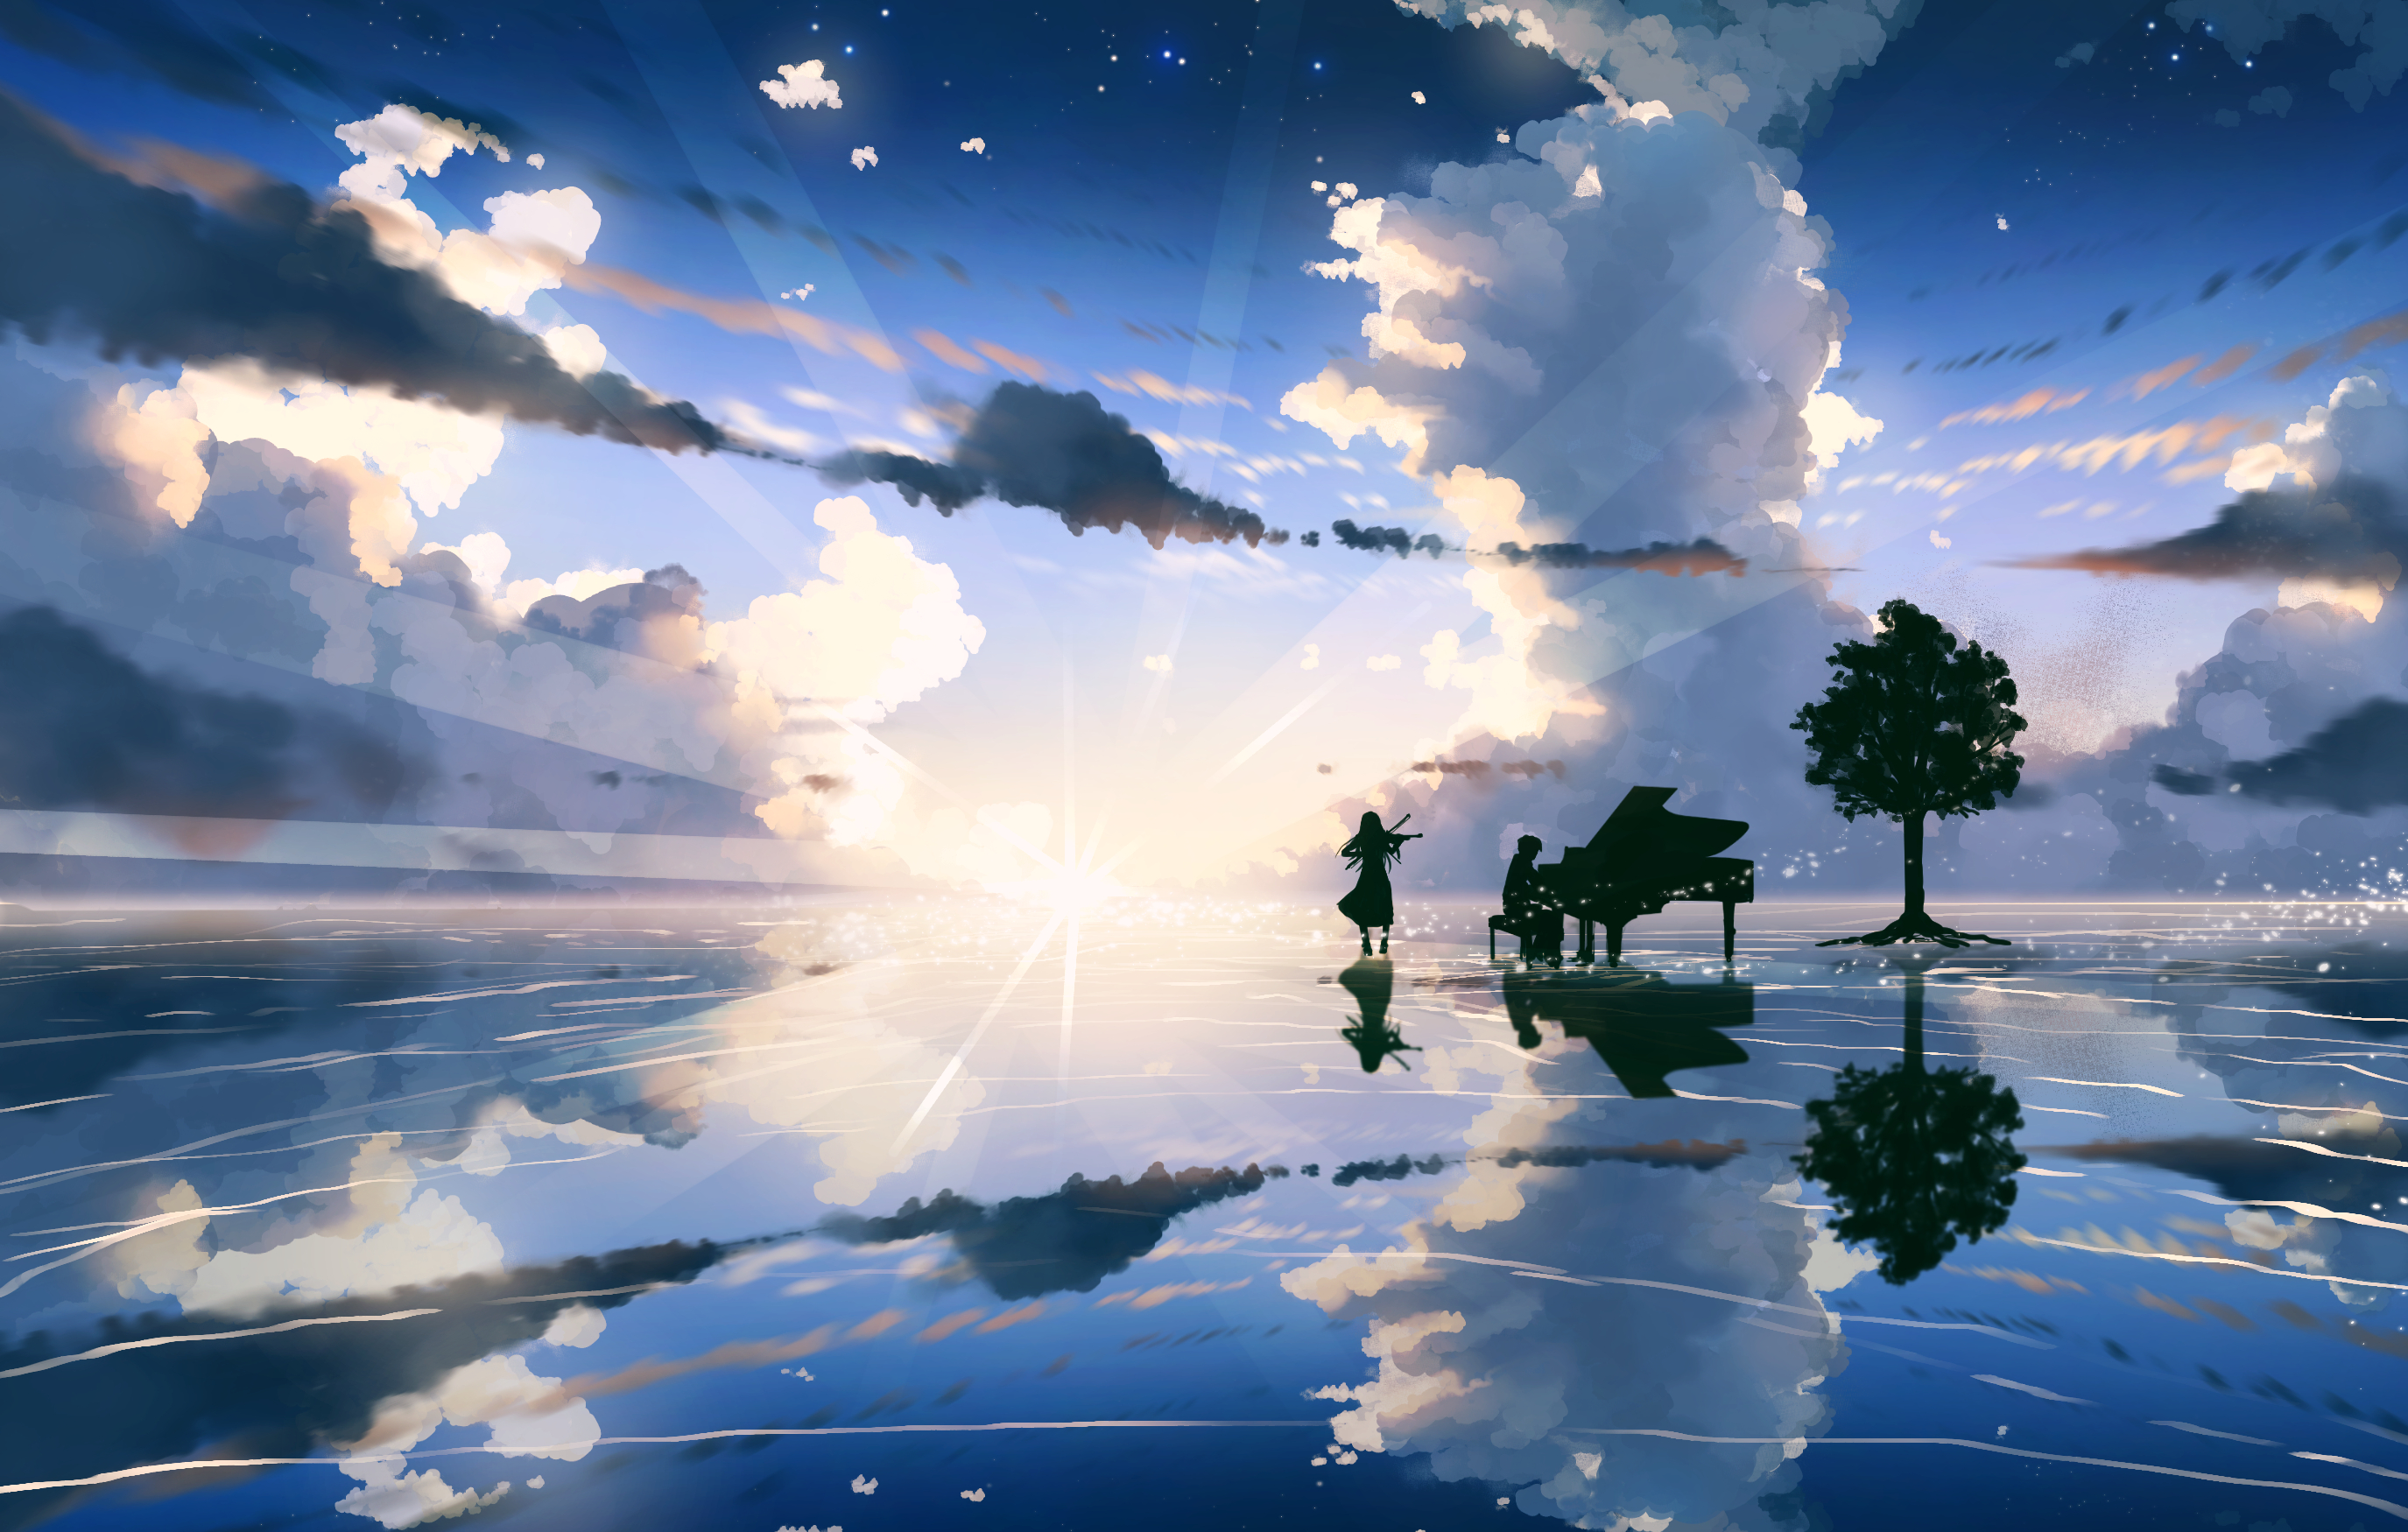 Your Lie In April Kaori Wallpaper Posted By Ryan Thompson